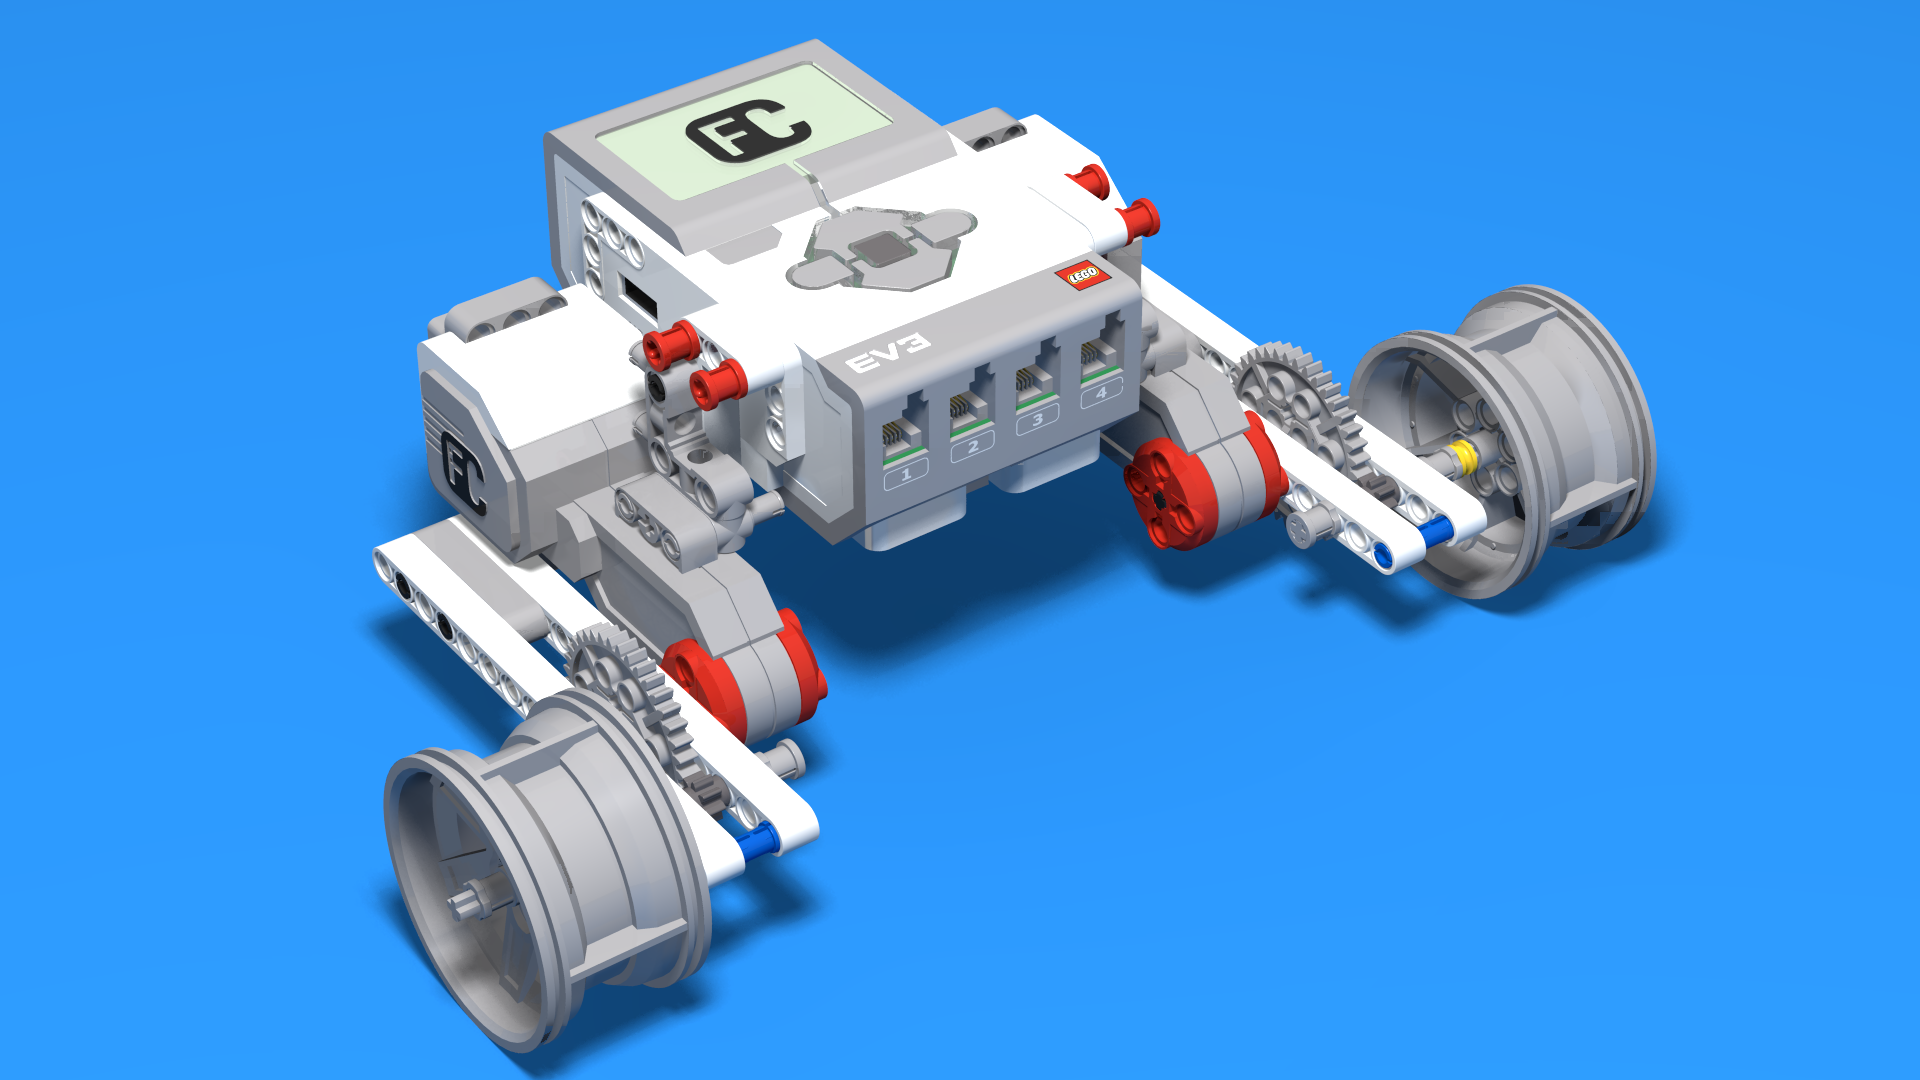 LEGO Mindstorms EV3 Easy Bot V3 Fllcasts